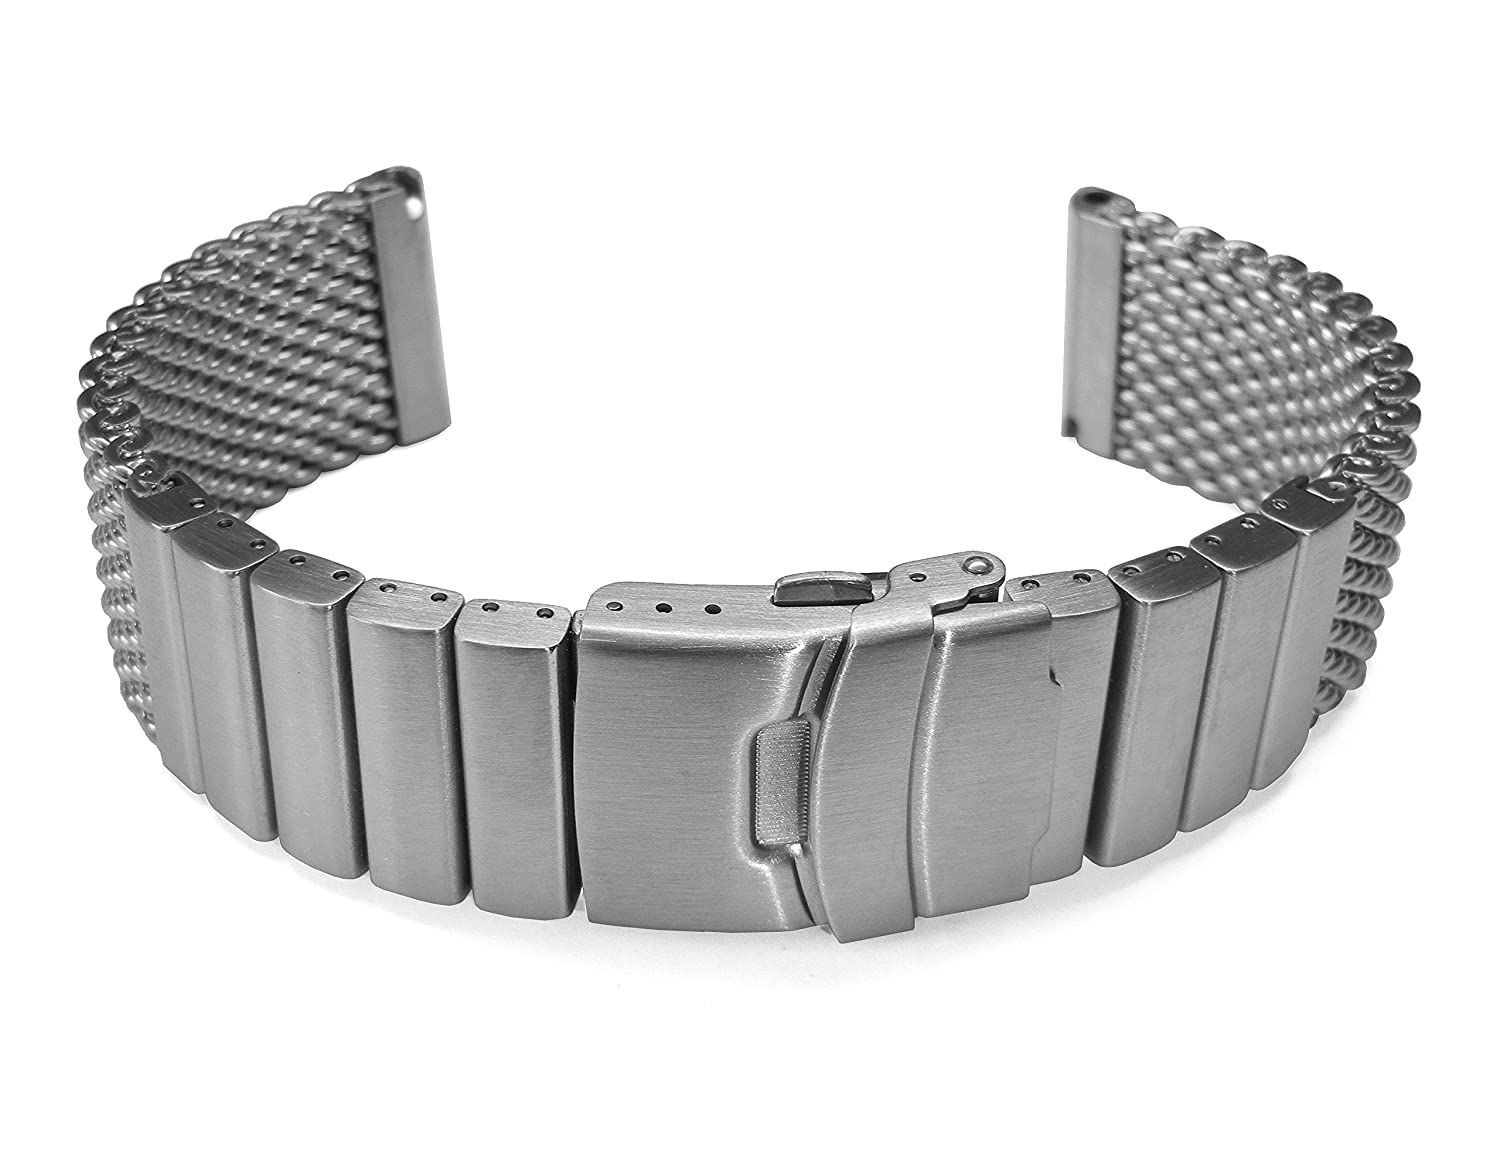 Amazon.com: 22mm TIMEWHEEL Heavy Stainless Steel Wire Mesh Bracelet ...